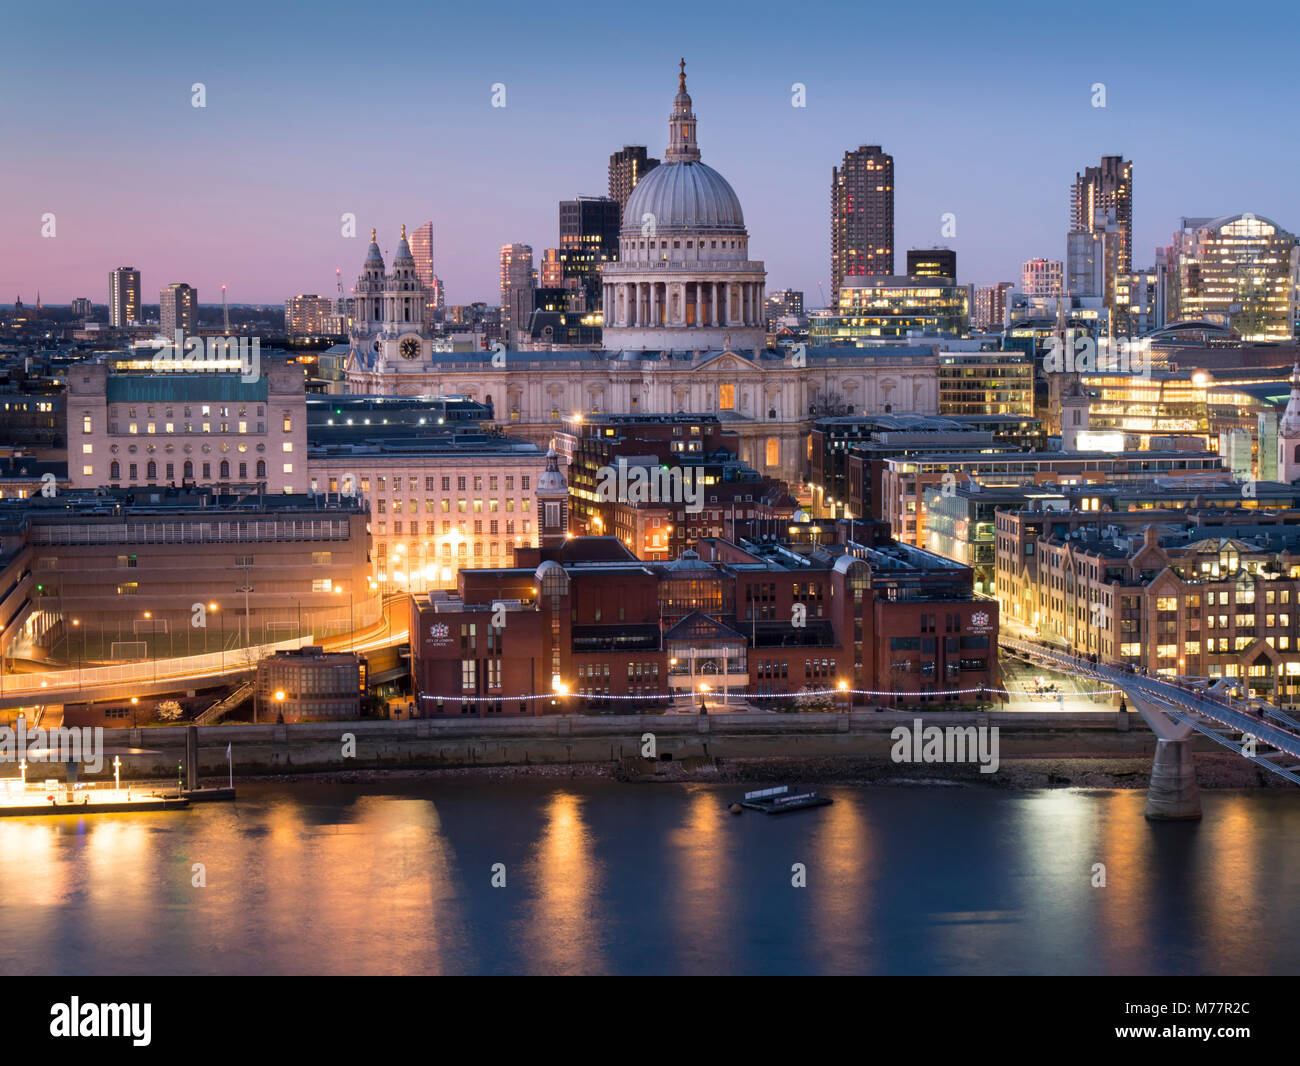 St. Paul's Cathedral and City of London skyline from Tate Switch at dusk, London, England, United Kingdom, Europe Stock Photo